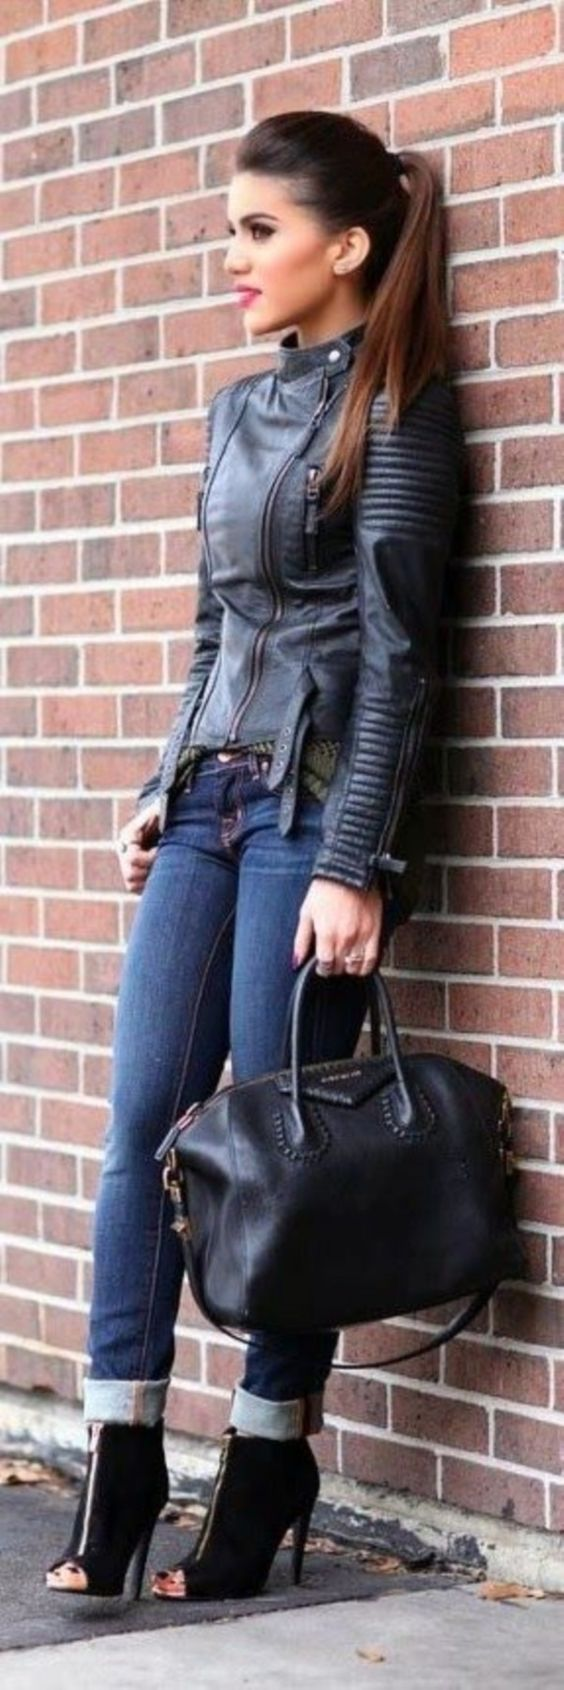 40 Edgy Fashion Ideas For Women | Pinterest | Fashion ideas Black leather jackets and Jacket jeans